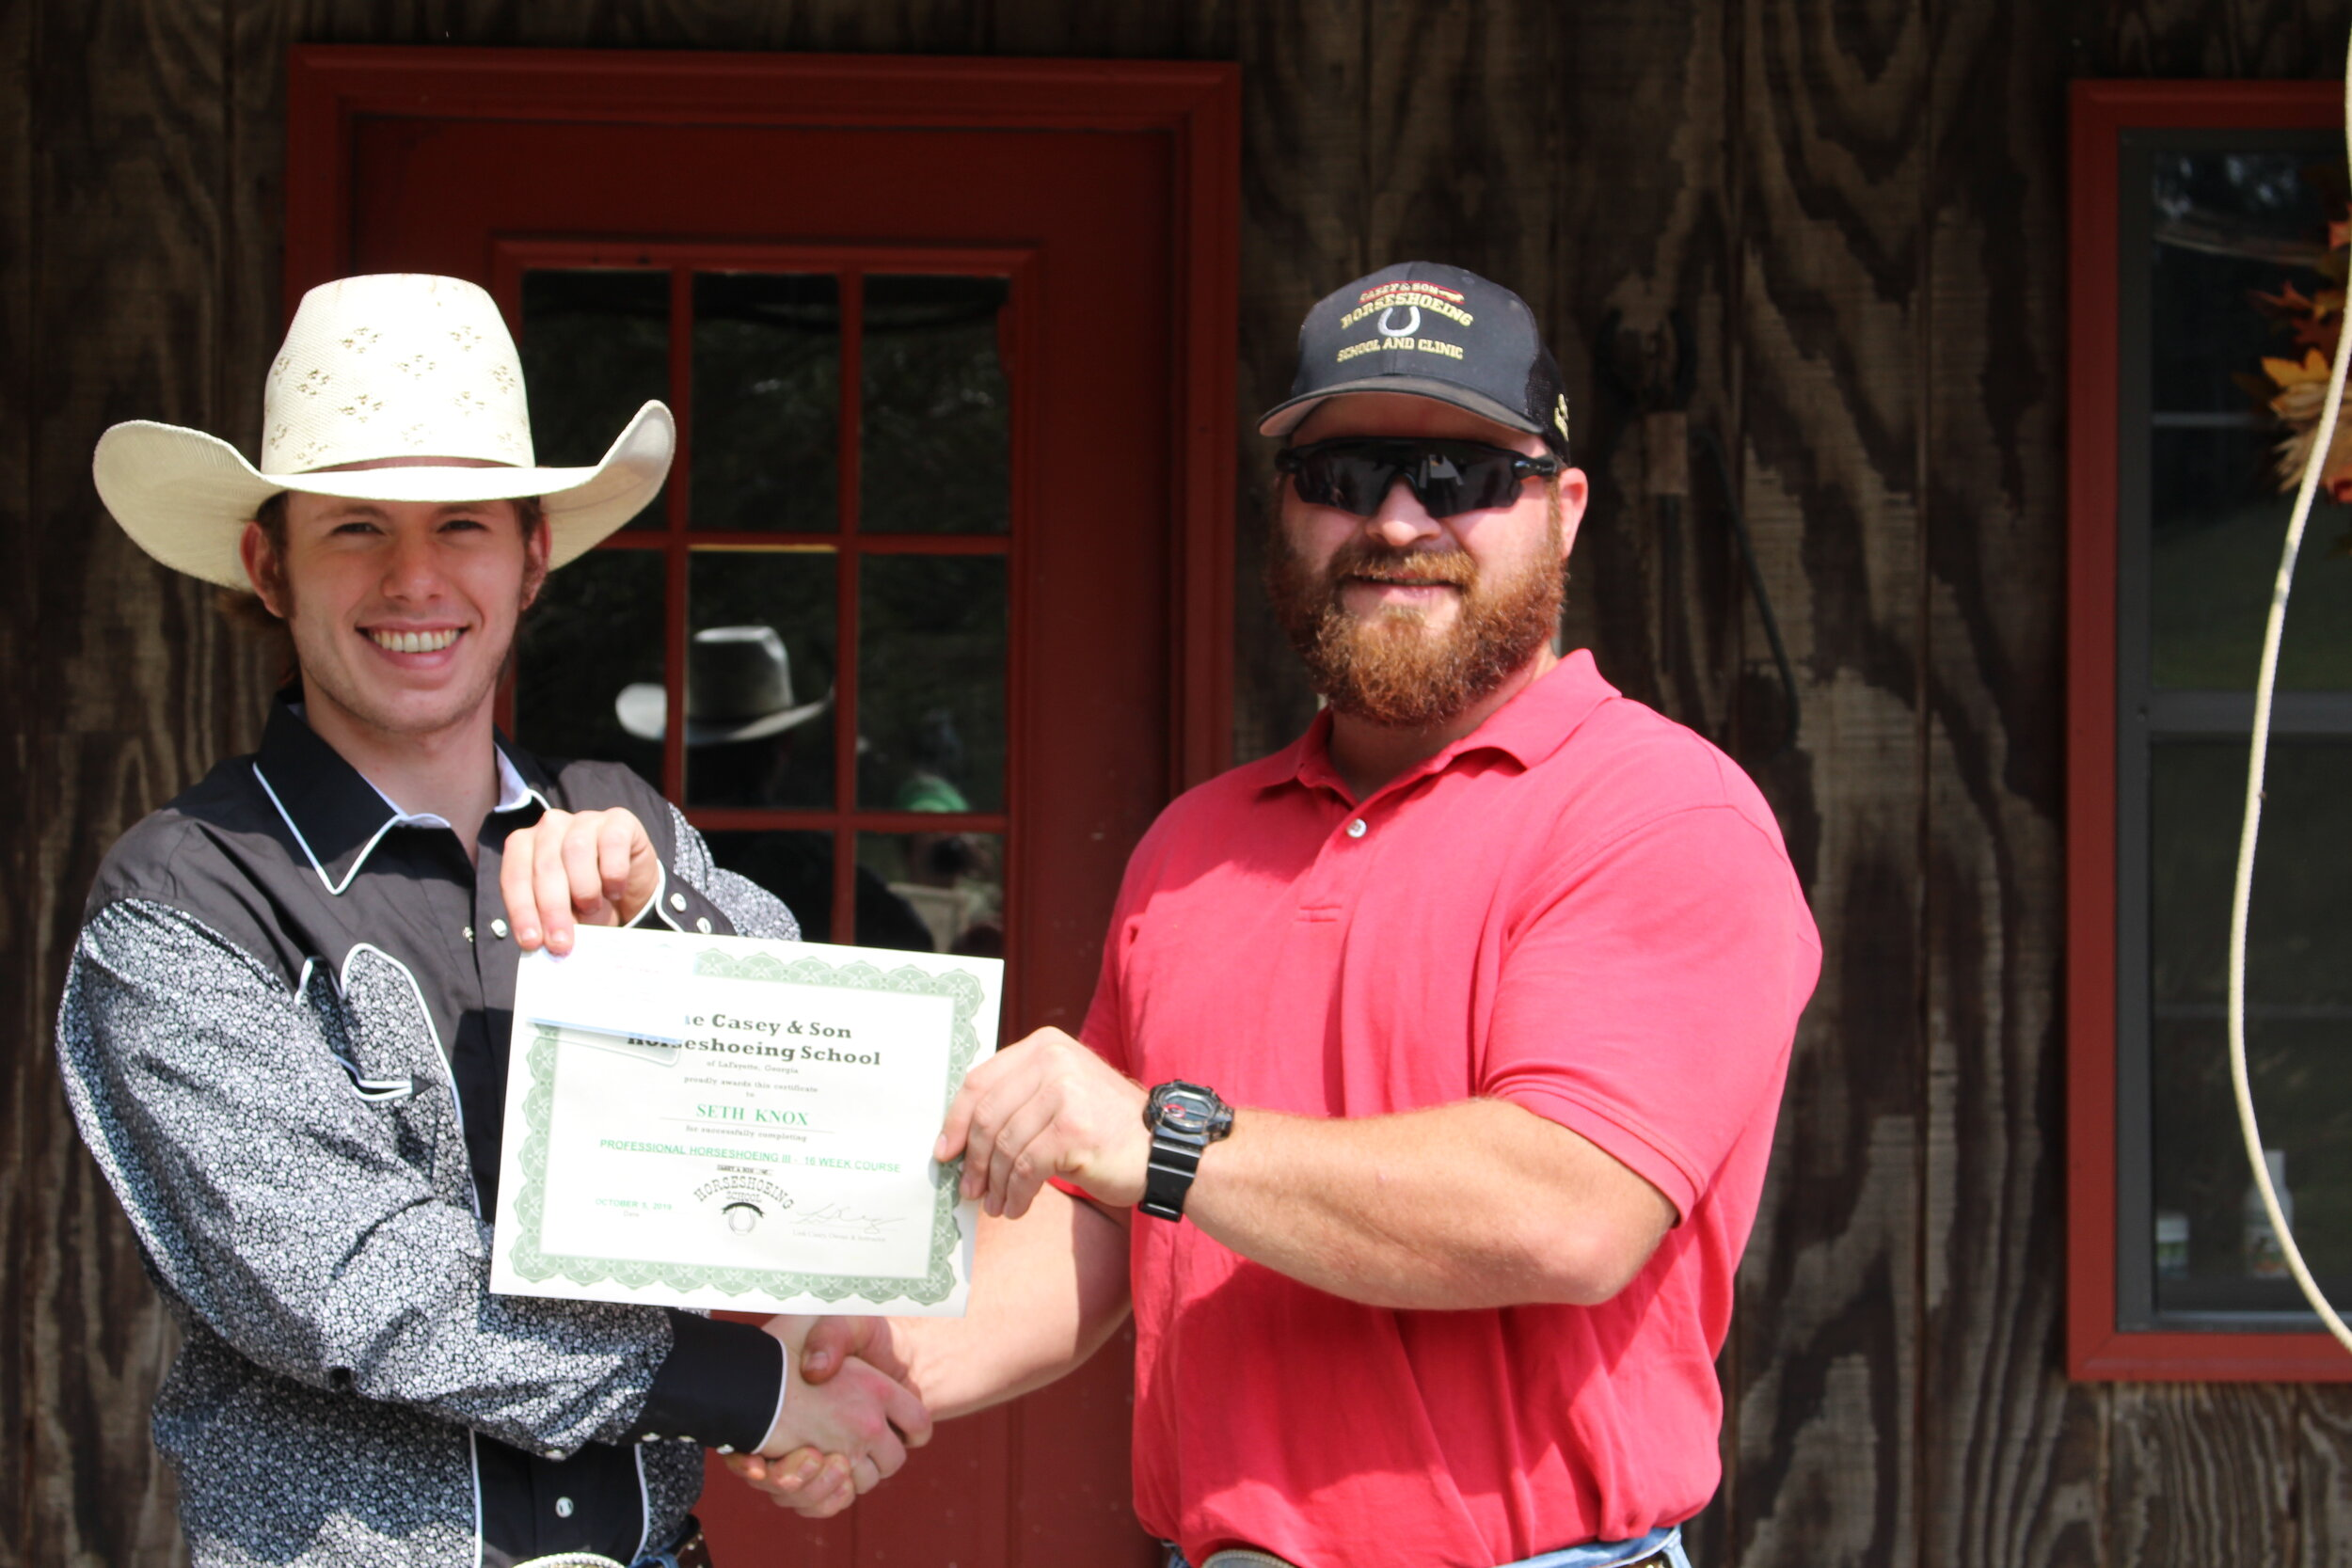 Seth Knox of TN Farrier Graduate of Professional Horseshoeing II at Casey & Son Horseshoeing School in Georgia here with Link Casey, Owner, Instructor